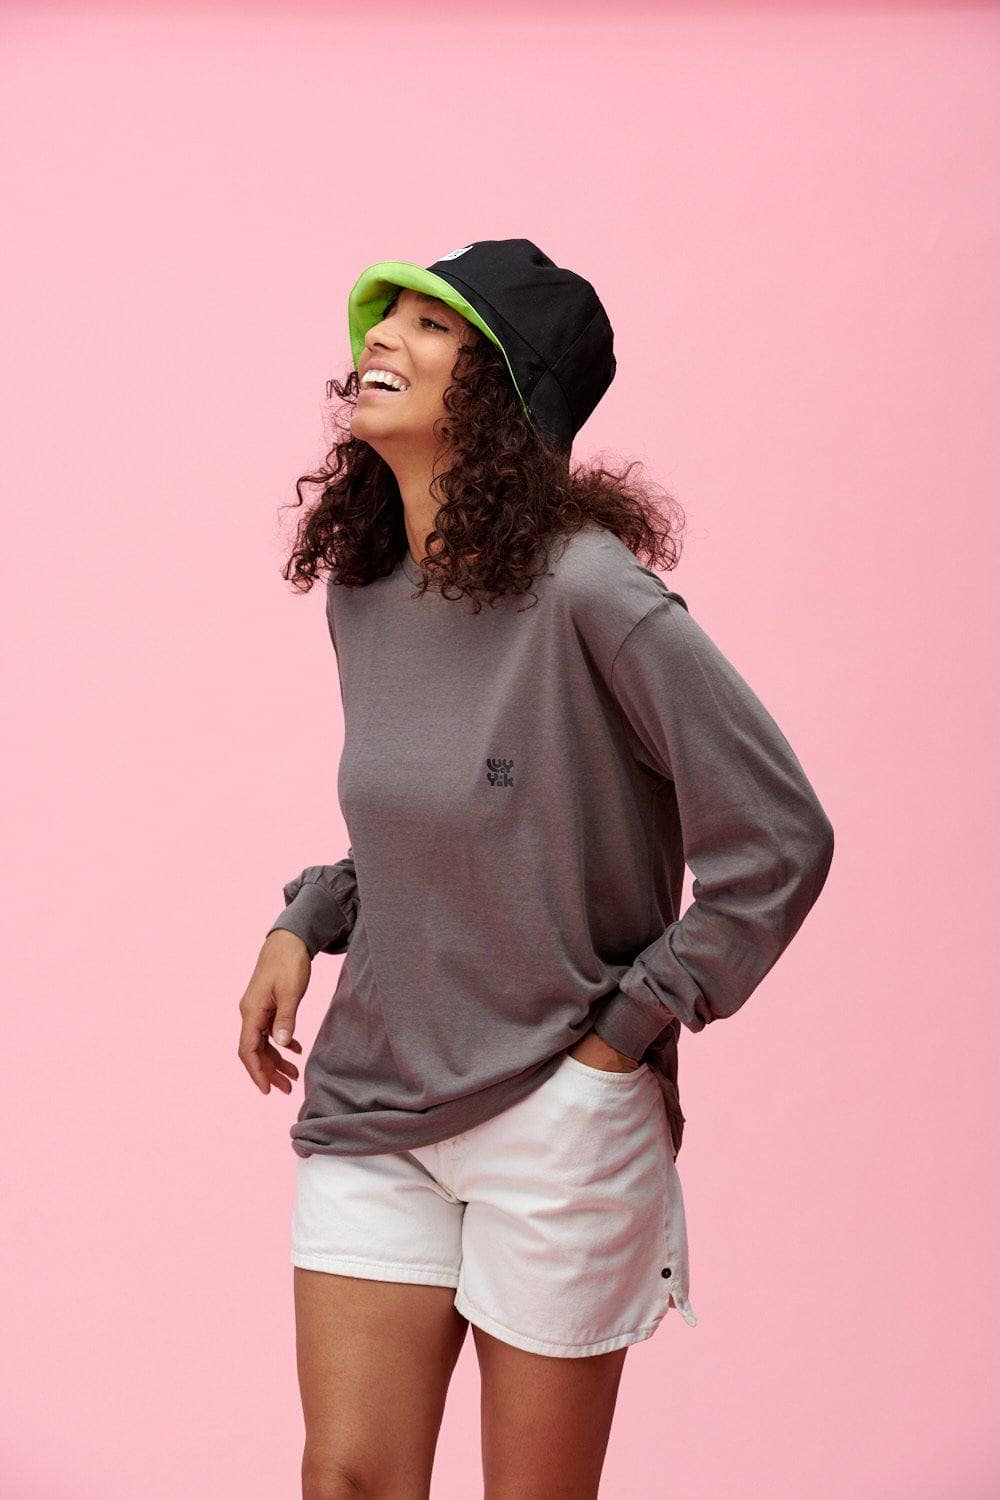 Lucy & Yak Hat Made in Britain 'Travis' Bucket Hat In Black & Lime